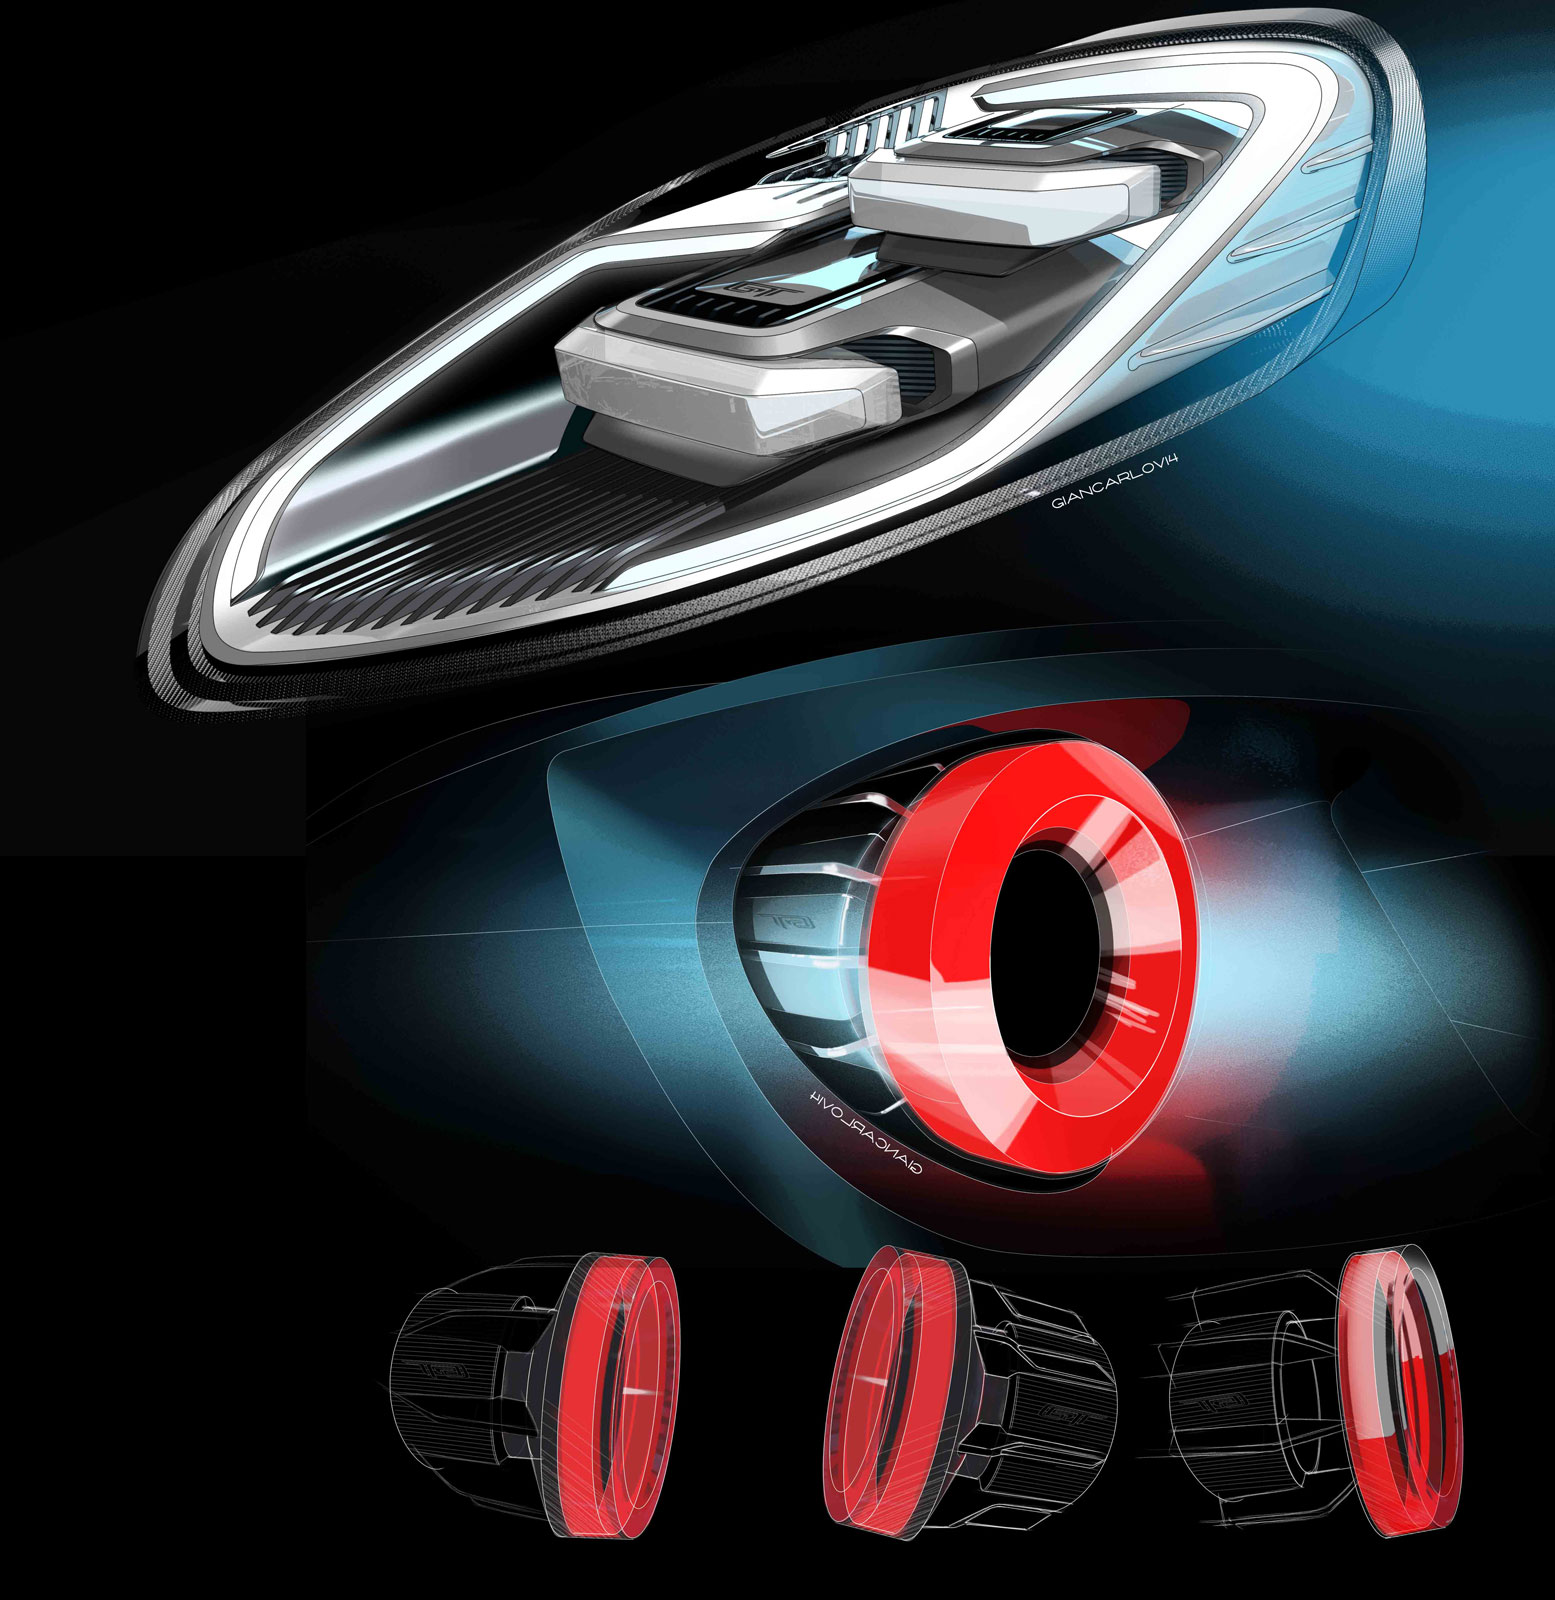 Ford GT Headlight And Tail Light Design Sketches By